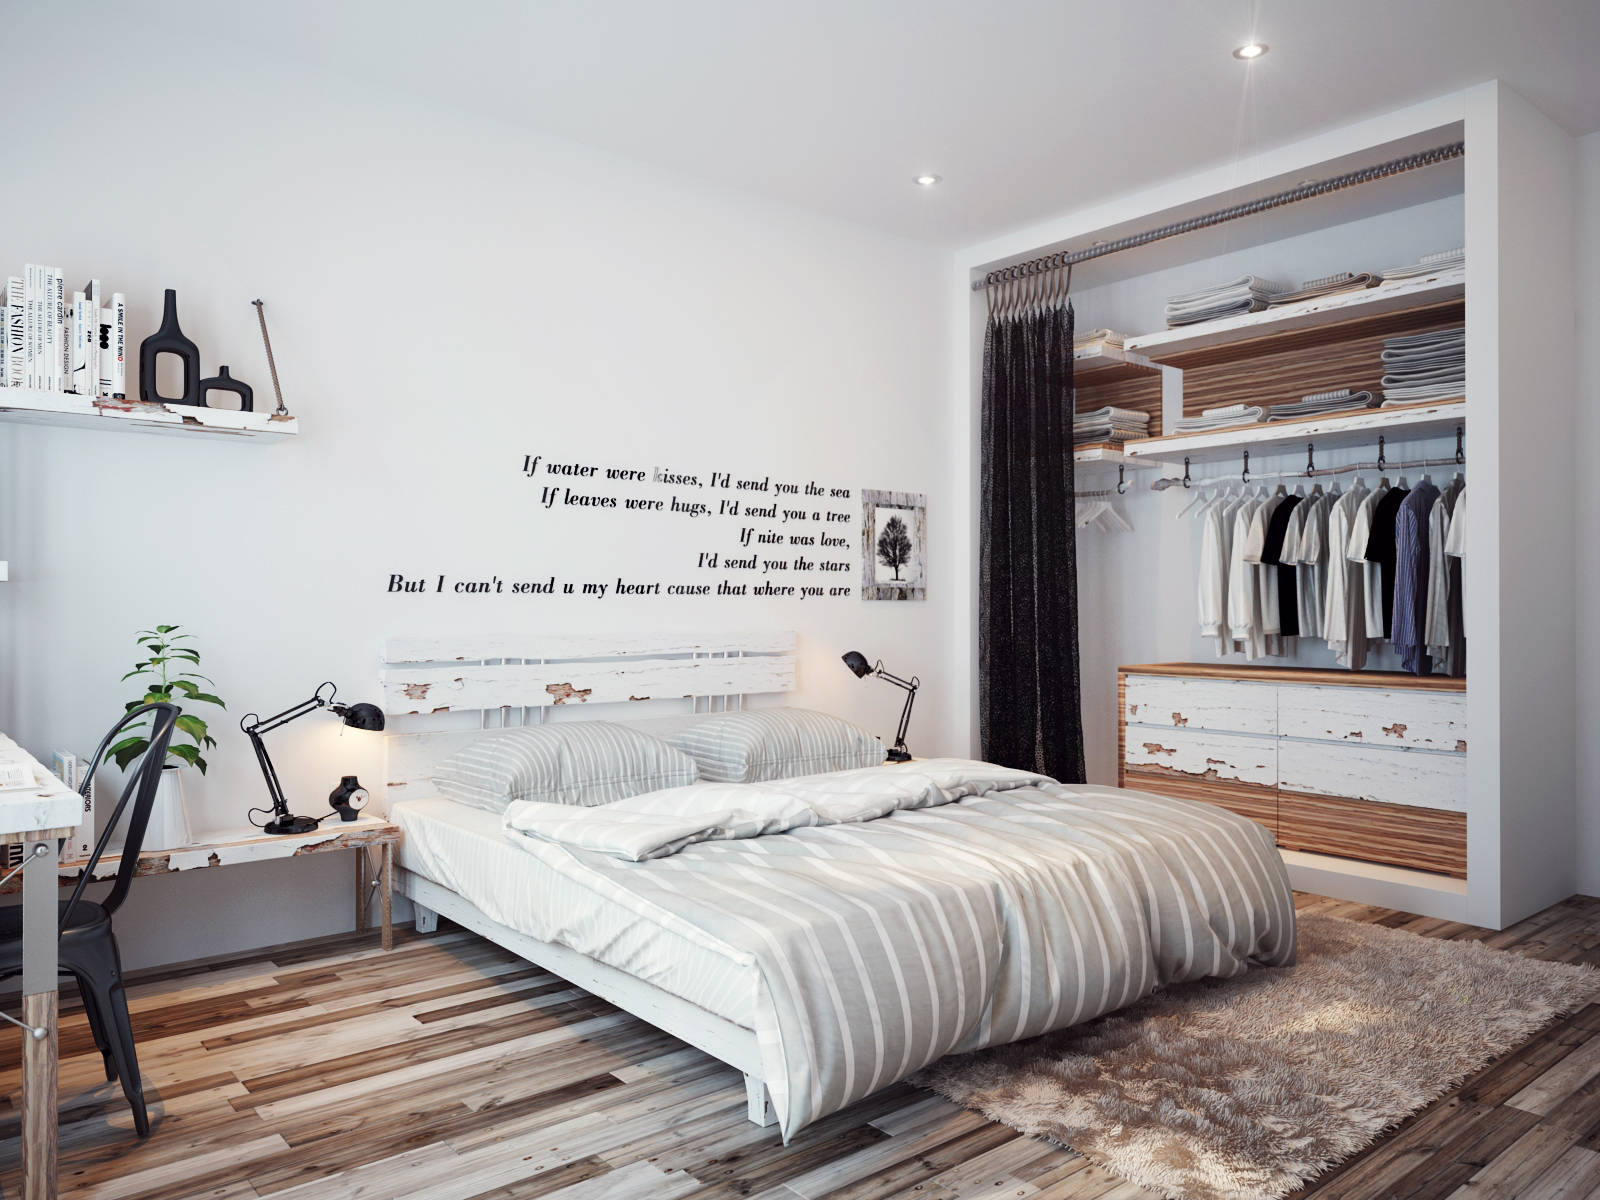 Bedroom wall quote interior design ideas How to design your bedroom wall